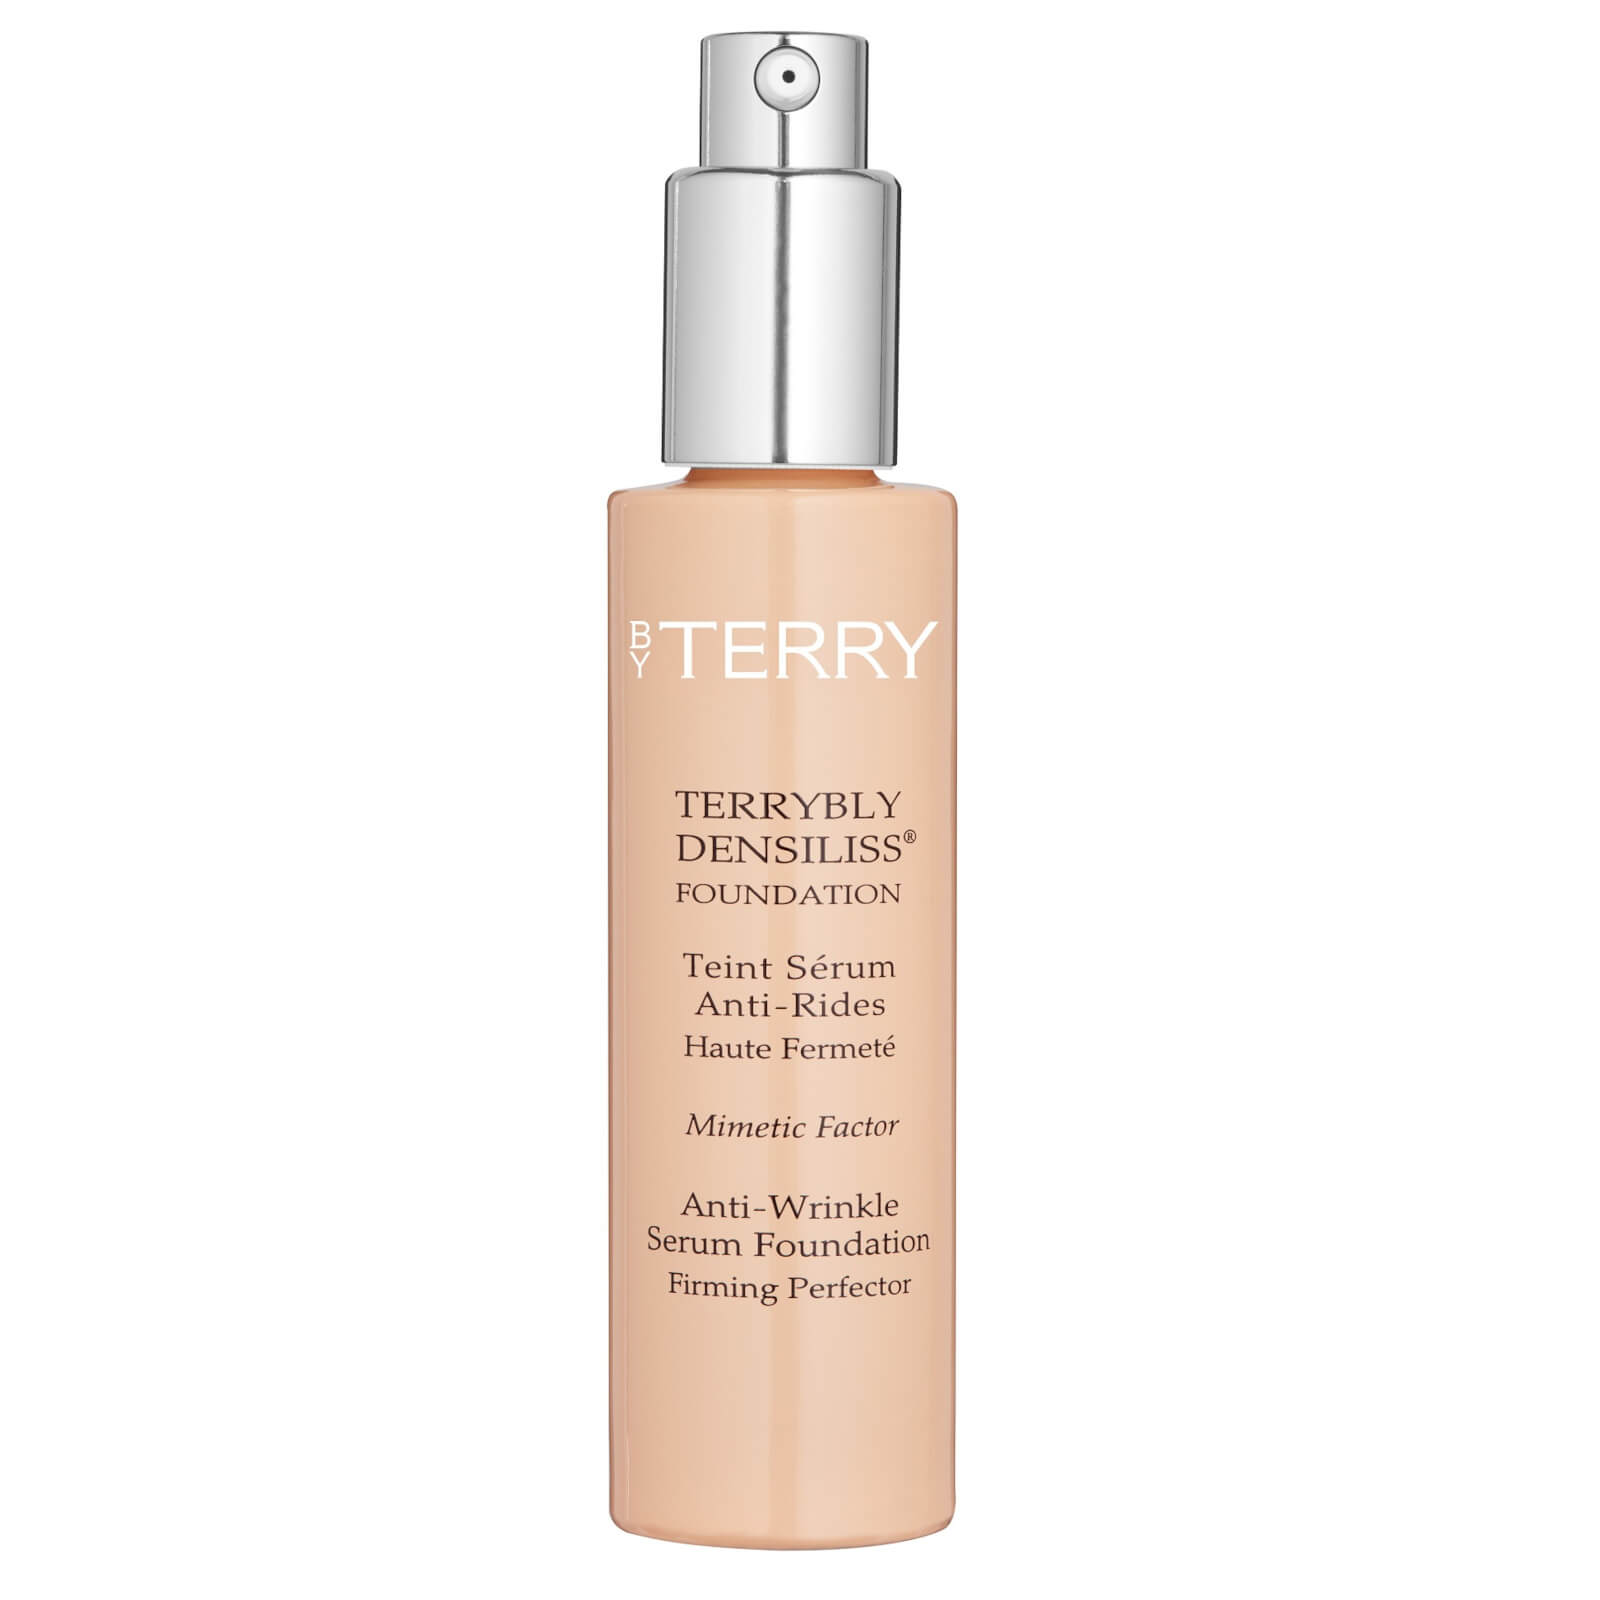 By Terry Terrybly Densiliss Foundation 30ml (Various Shades) - 5.5. Rosy Sand